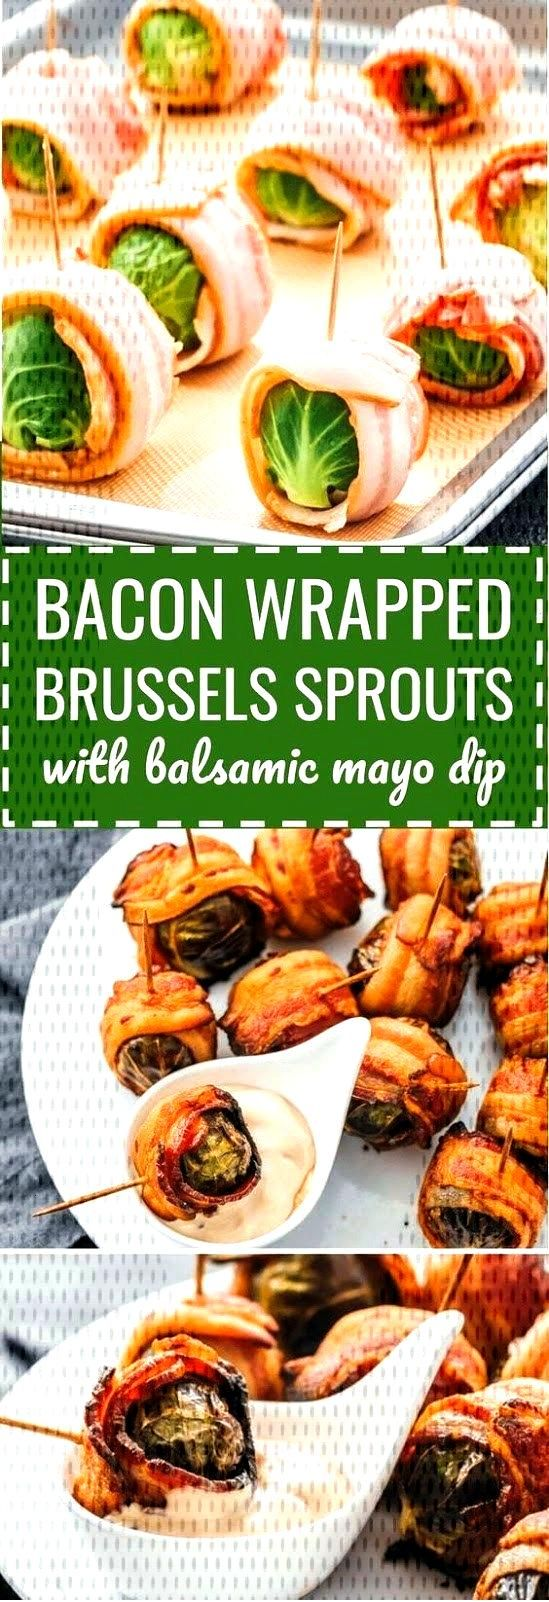 Bacon Wrapped Brussels Sprouts With Balsamic Mayo Dip Recipe This Thanksgiving Recipes was brillian